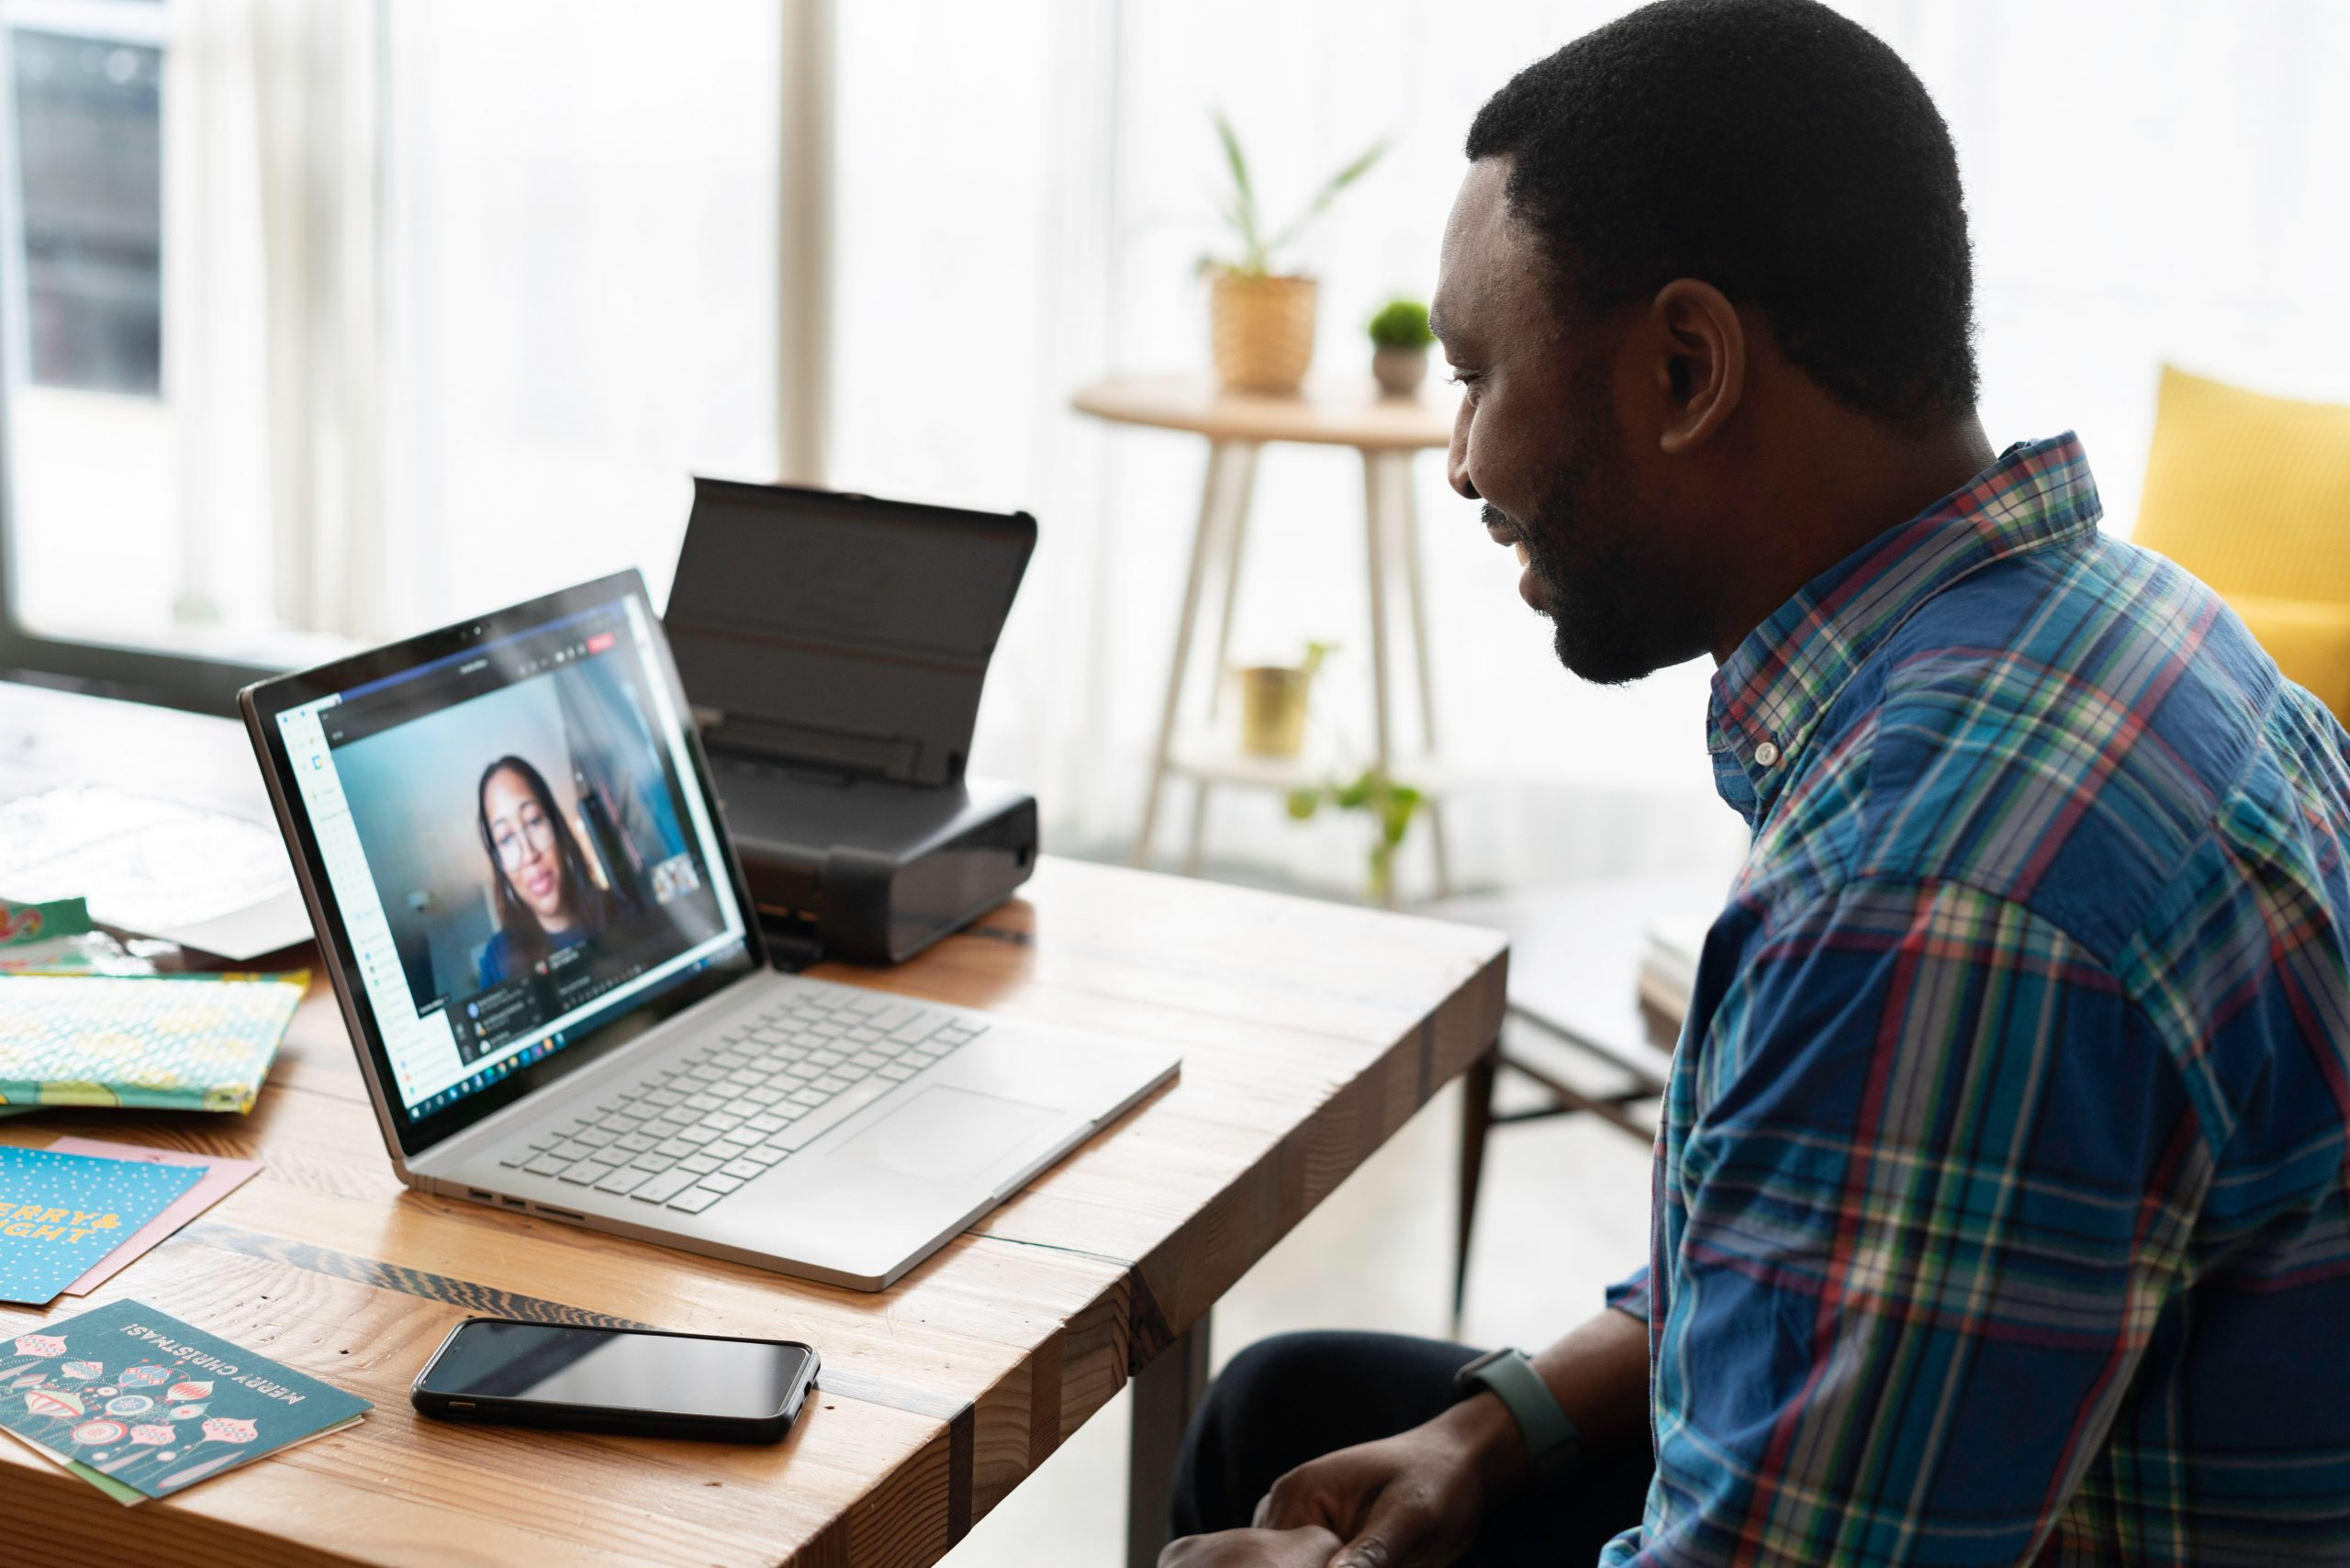 Man holding cross-cultural virtual meeting on Zoom